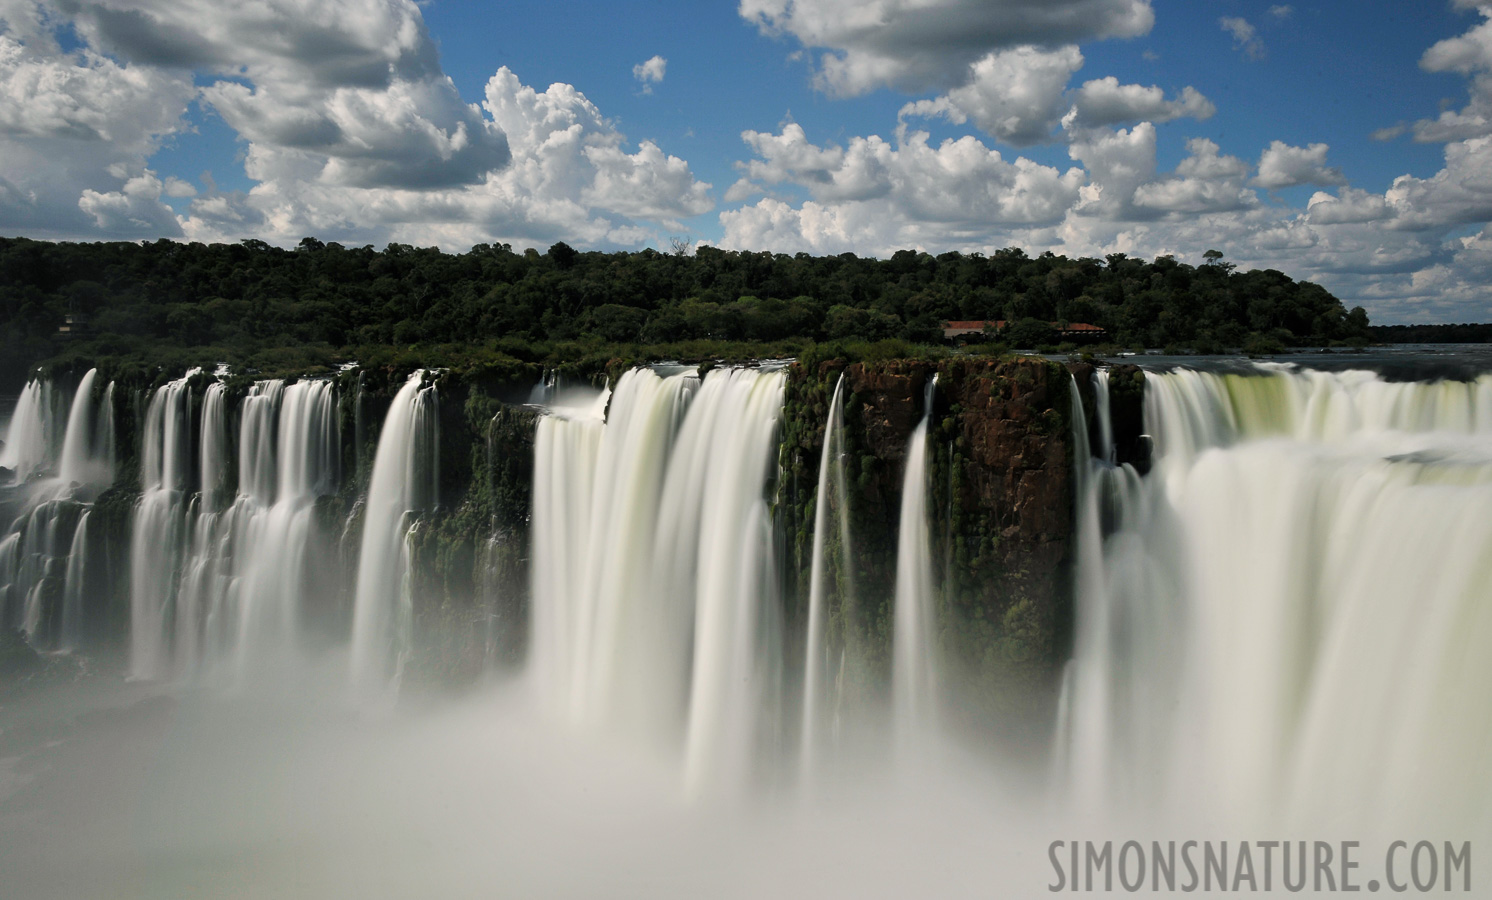 Cataratas del Iguazu [28 mm, 4.0 sec at f / 22, ISO 200]